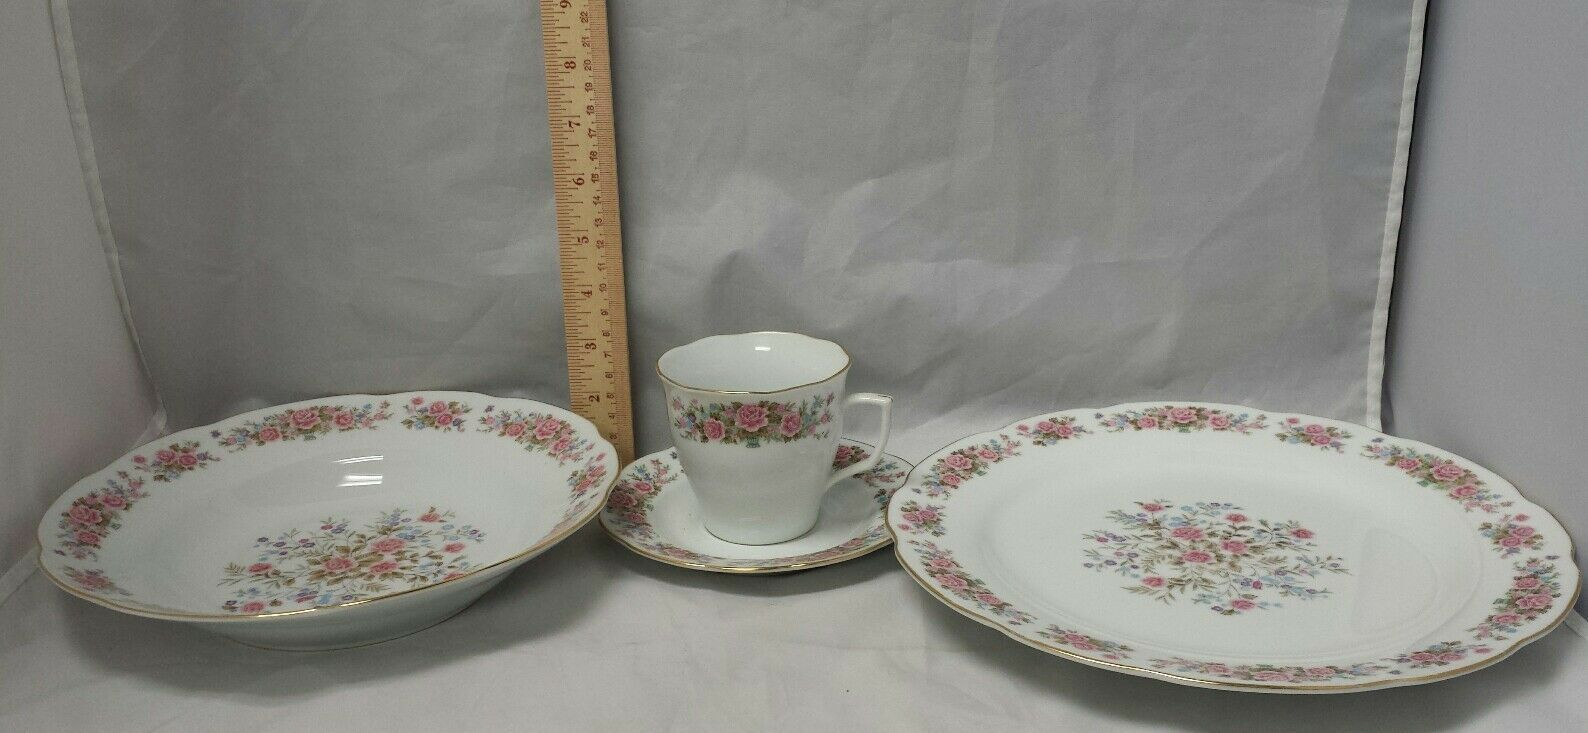 Remington Fine China: Spring Garden by Red Sea, Plate, Soup Bowl, Tea Cup Saucer image 5